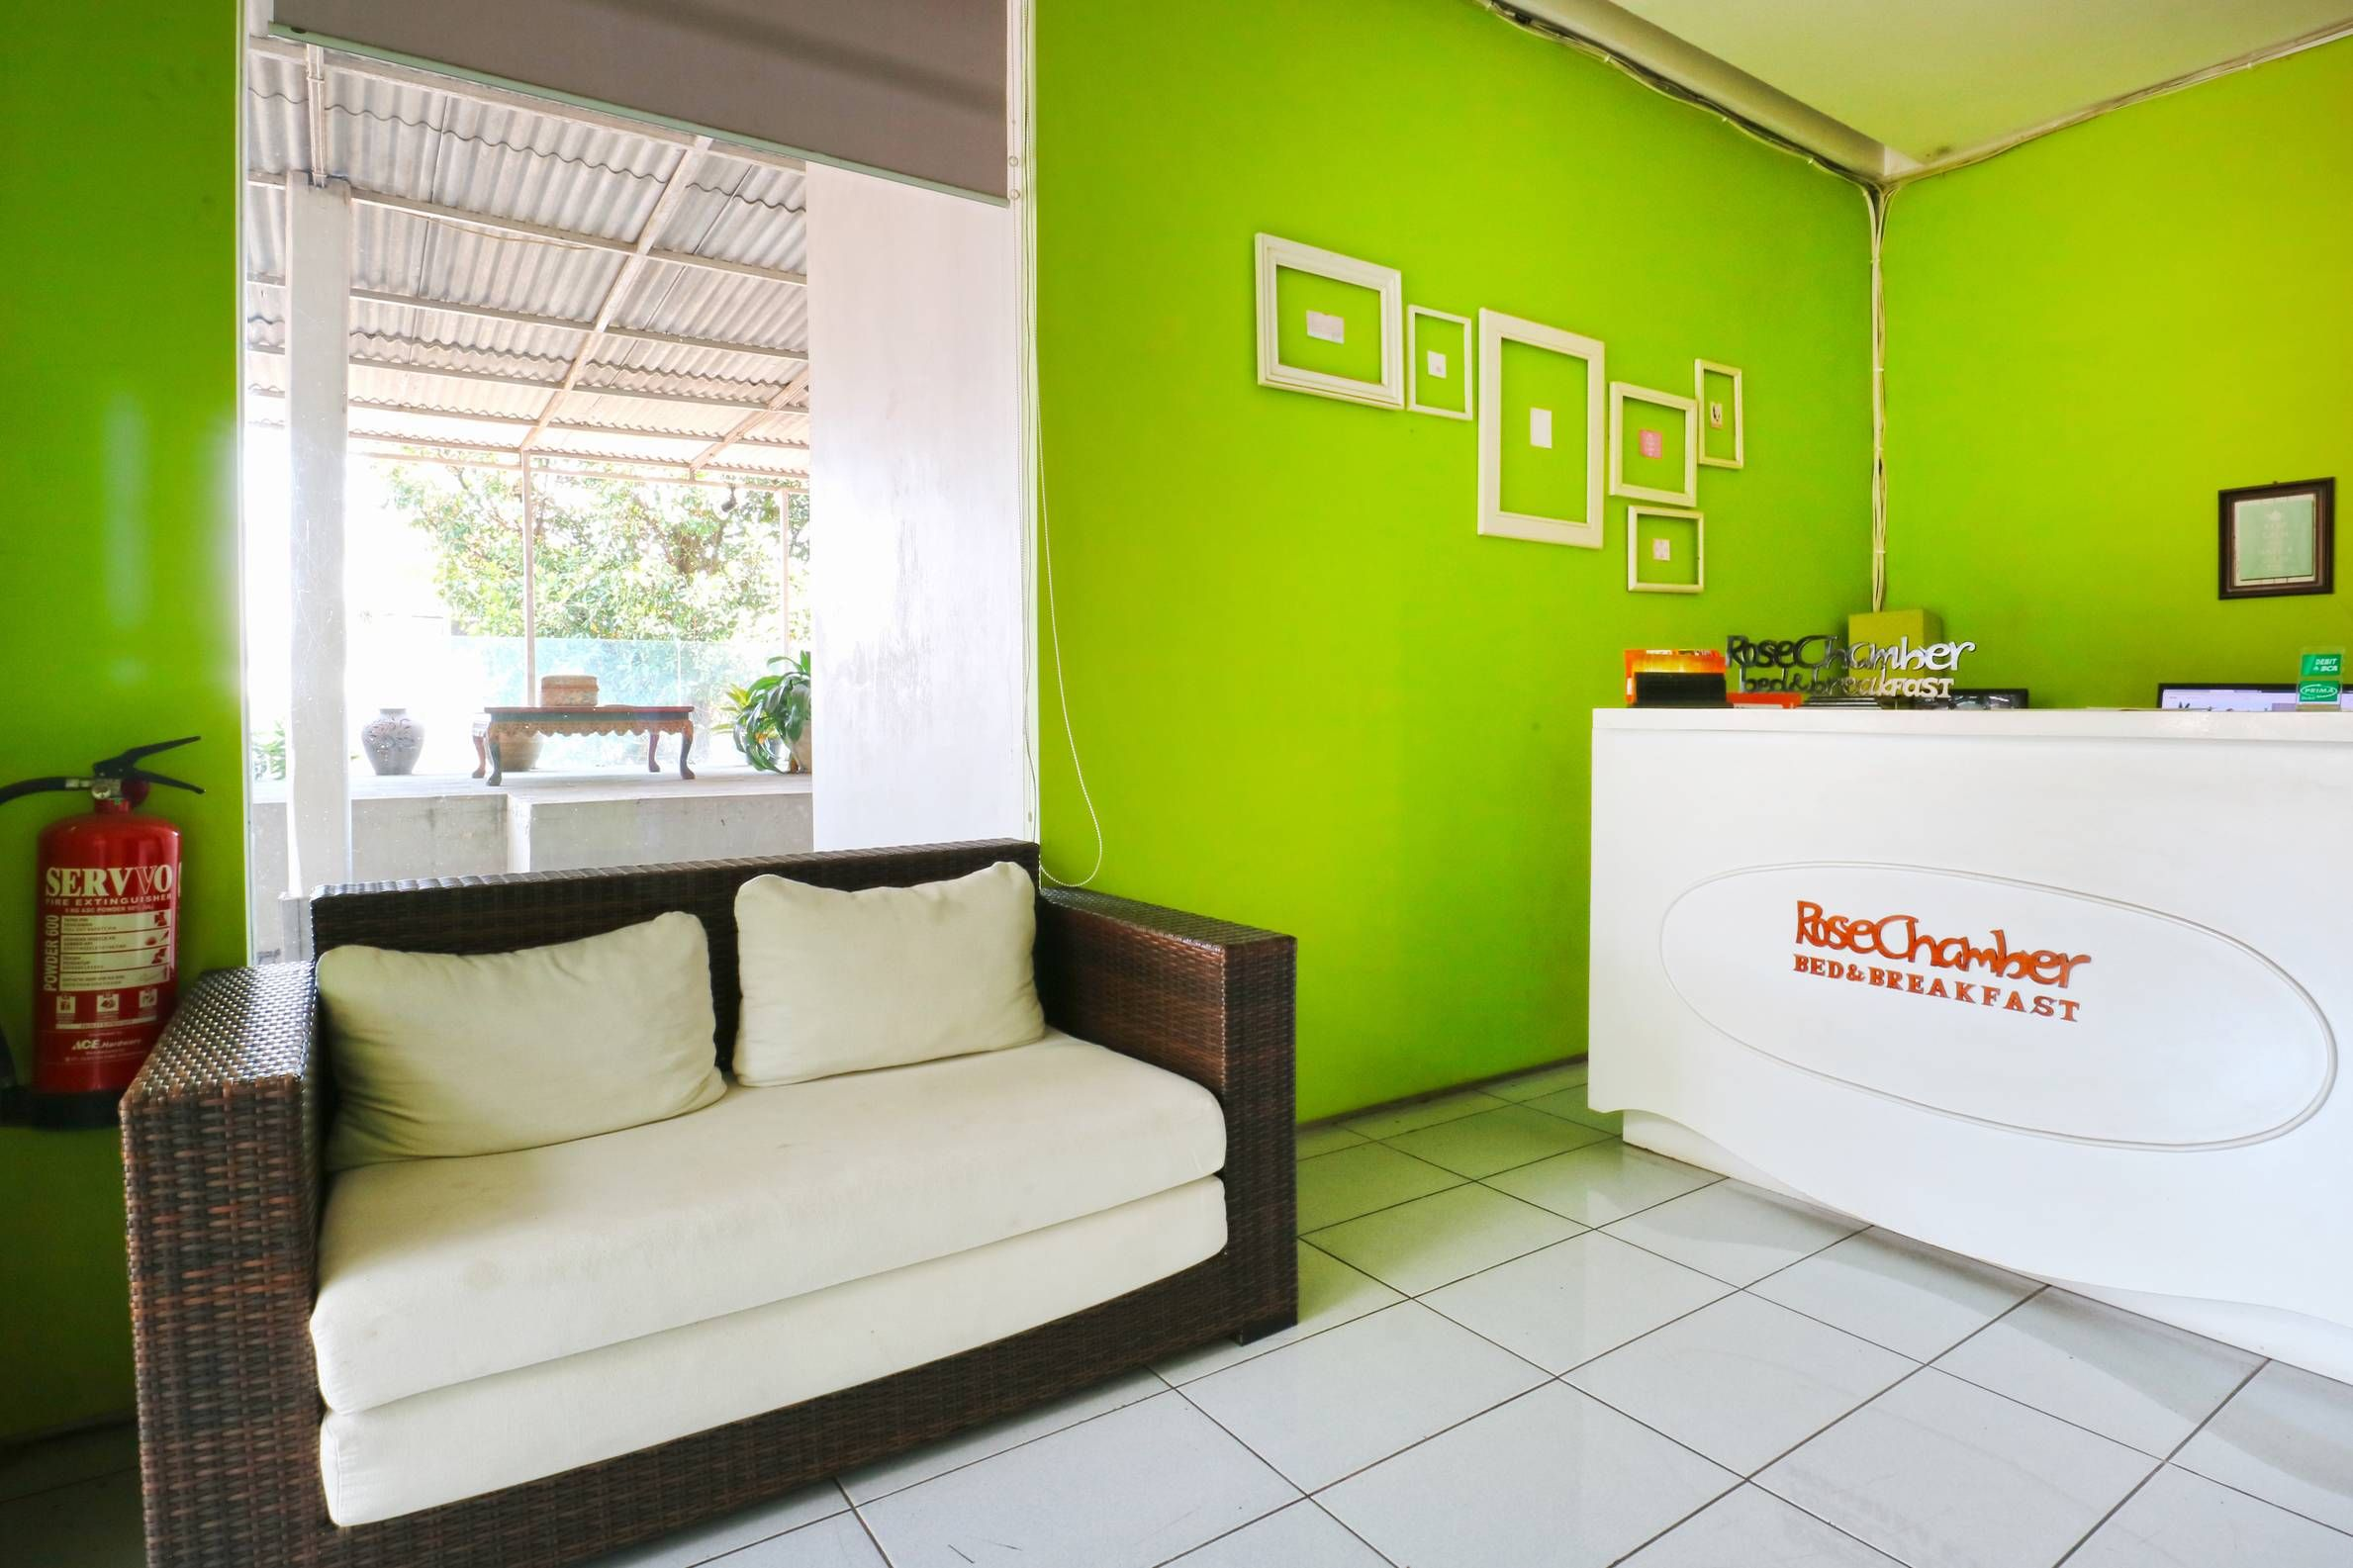 Rose Chamber Bed and Breakfast, Bandung